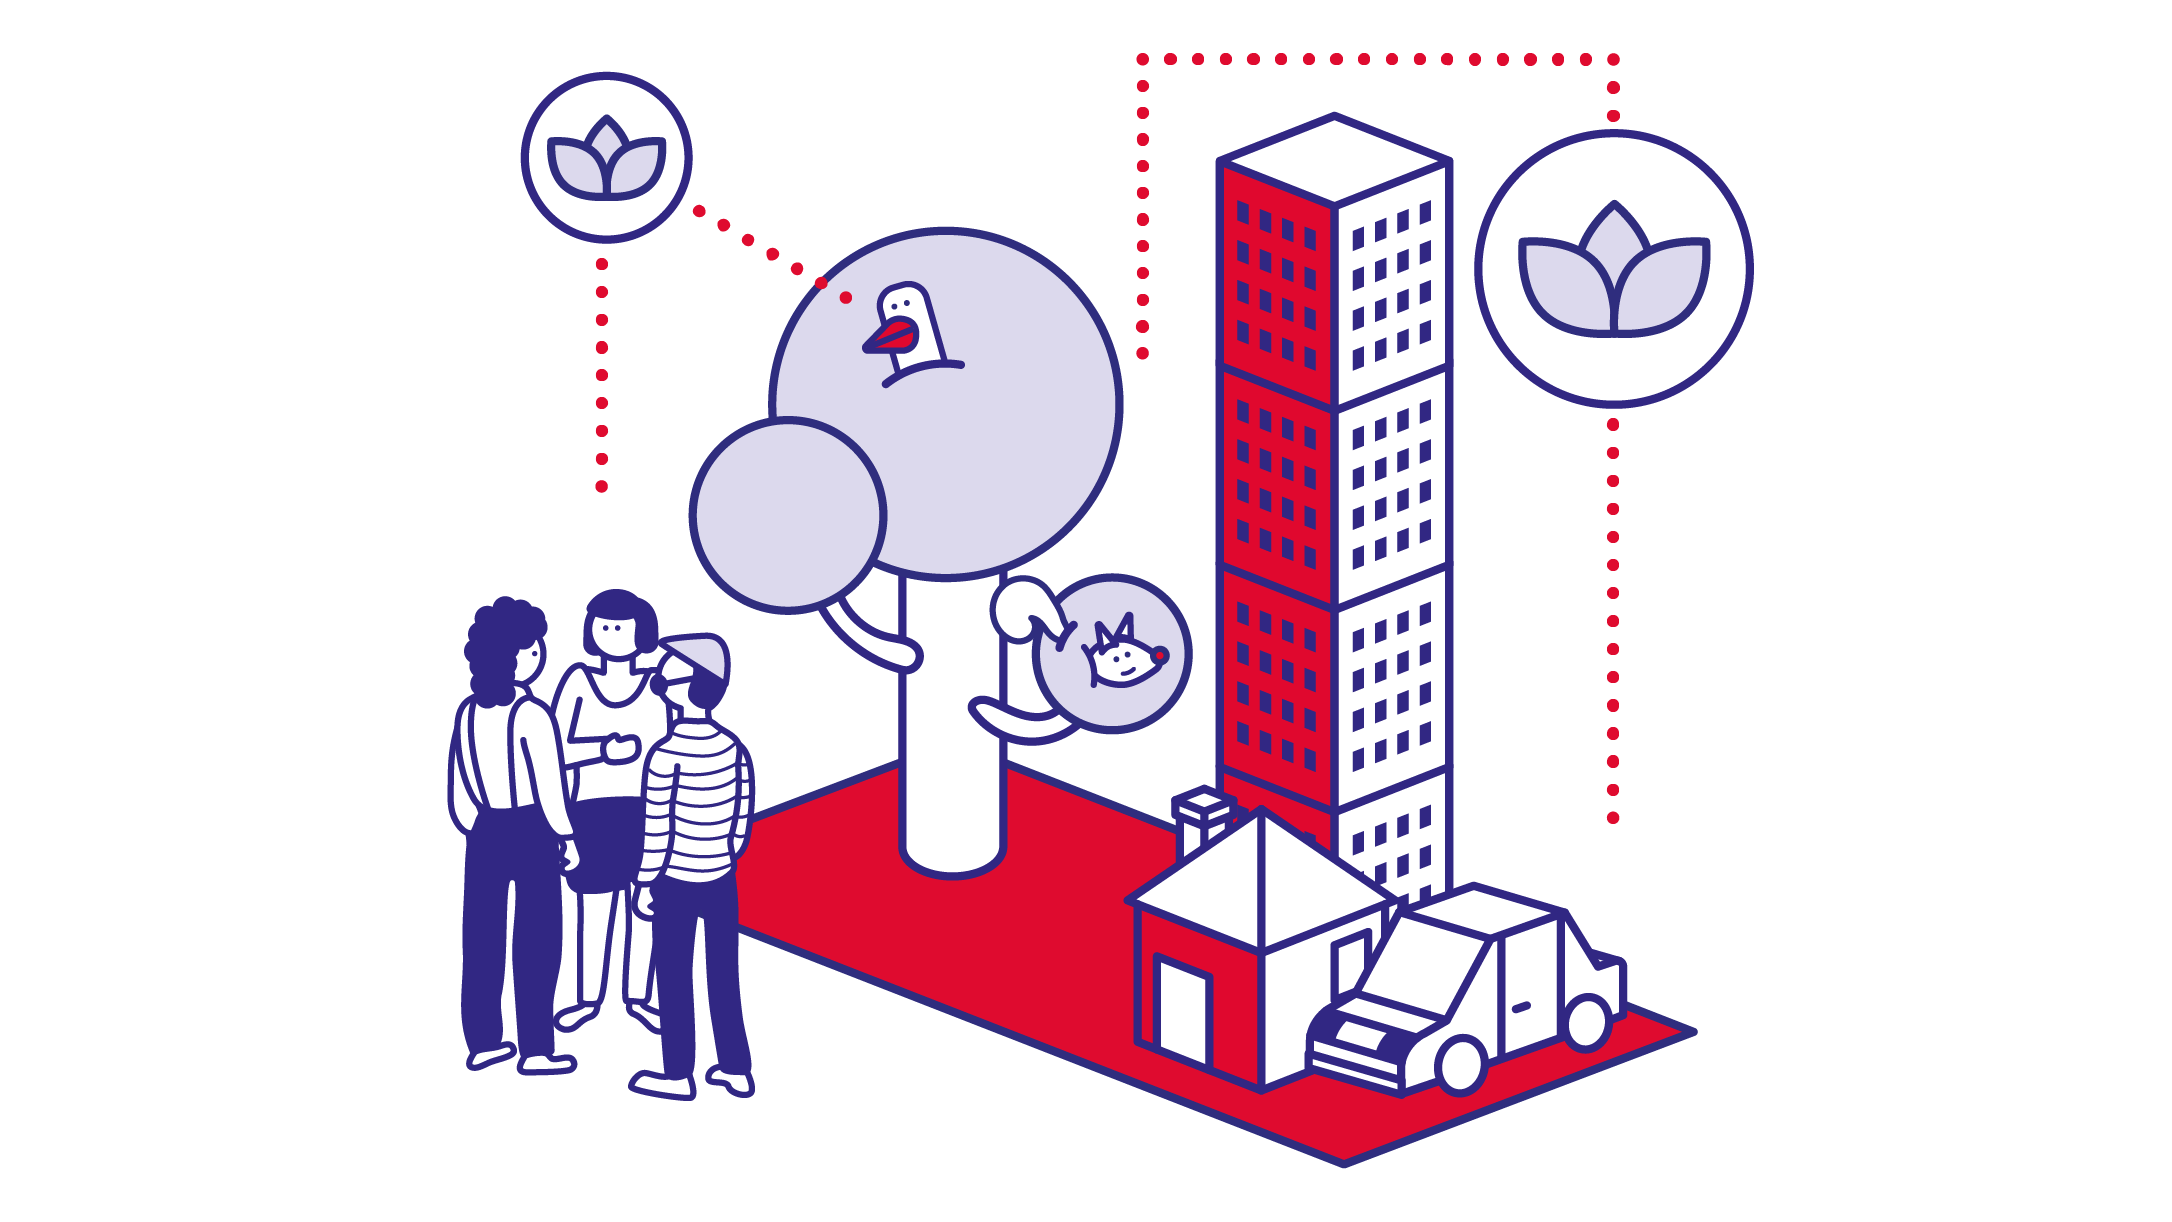 Illustration of a minimalist city scape. The image shows three people standing together, a tree with a bird in it, a skyscraper, a single family home and a car.